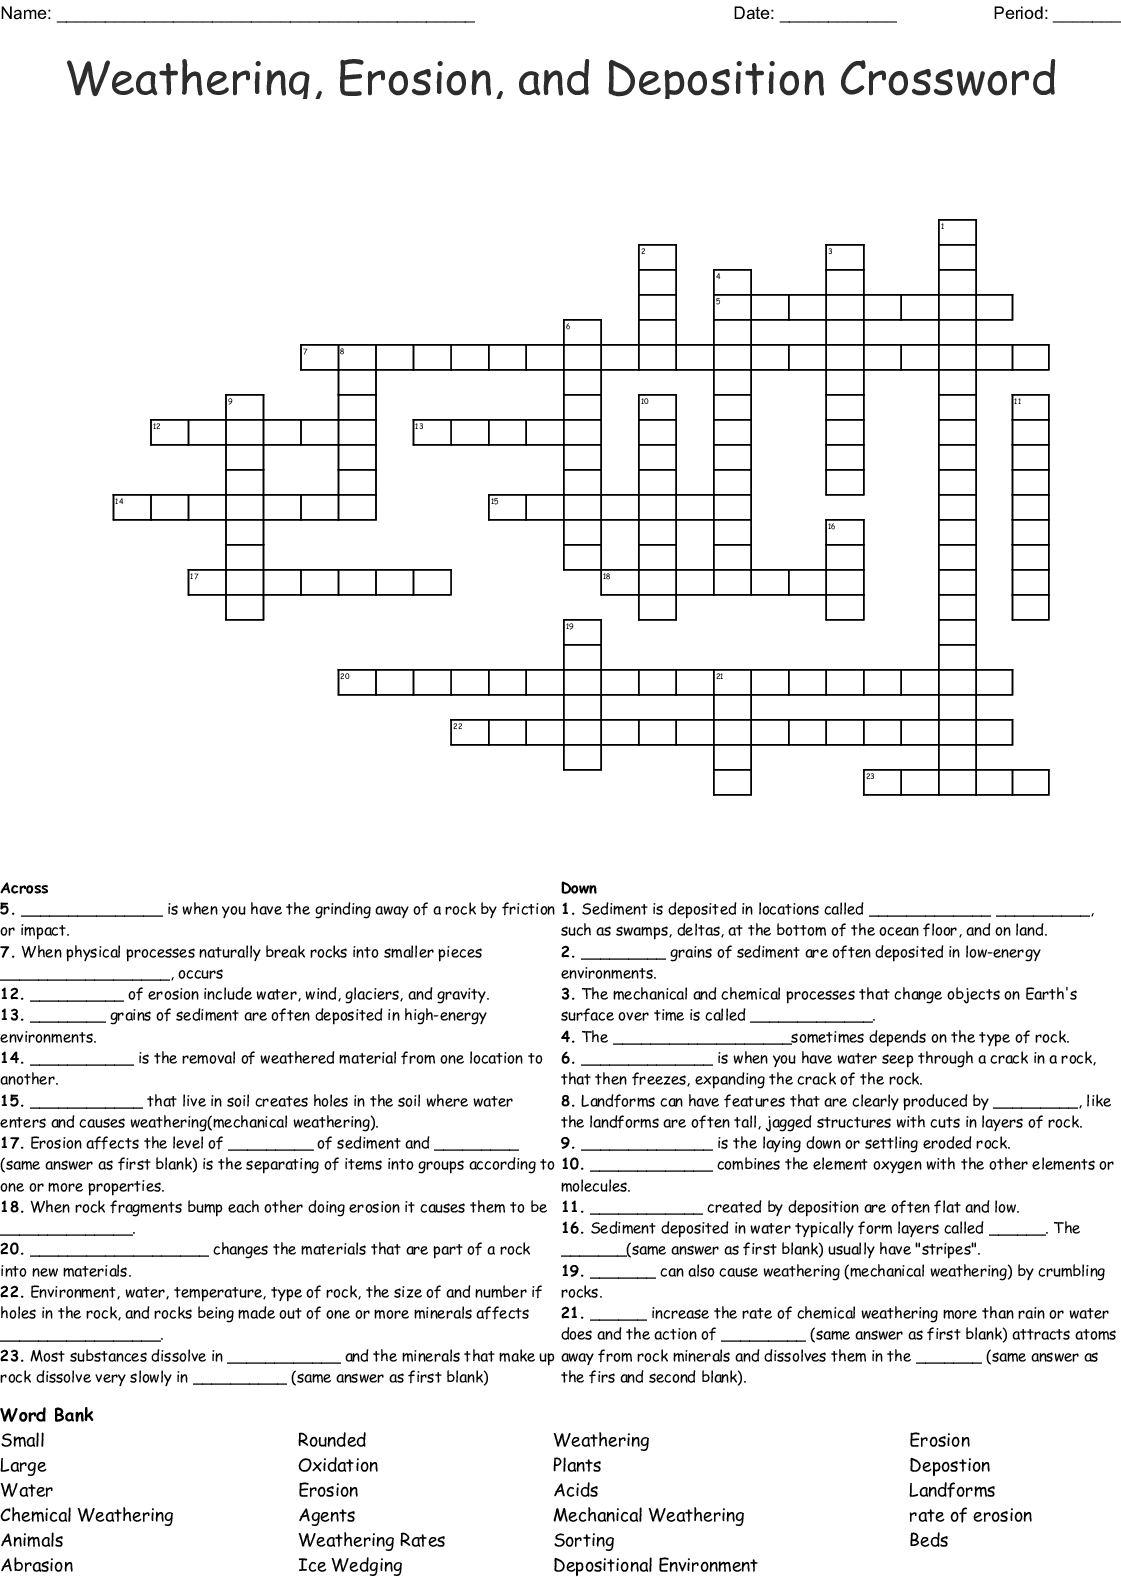 Weathing Erosion And Deposition Crossword